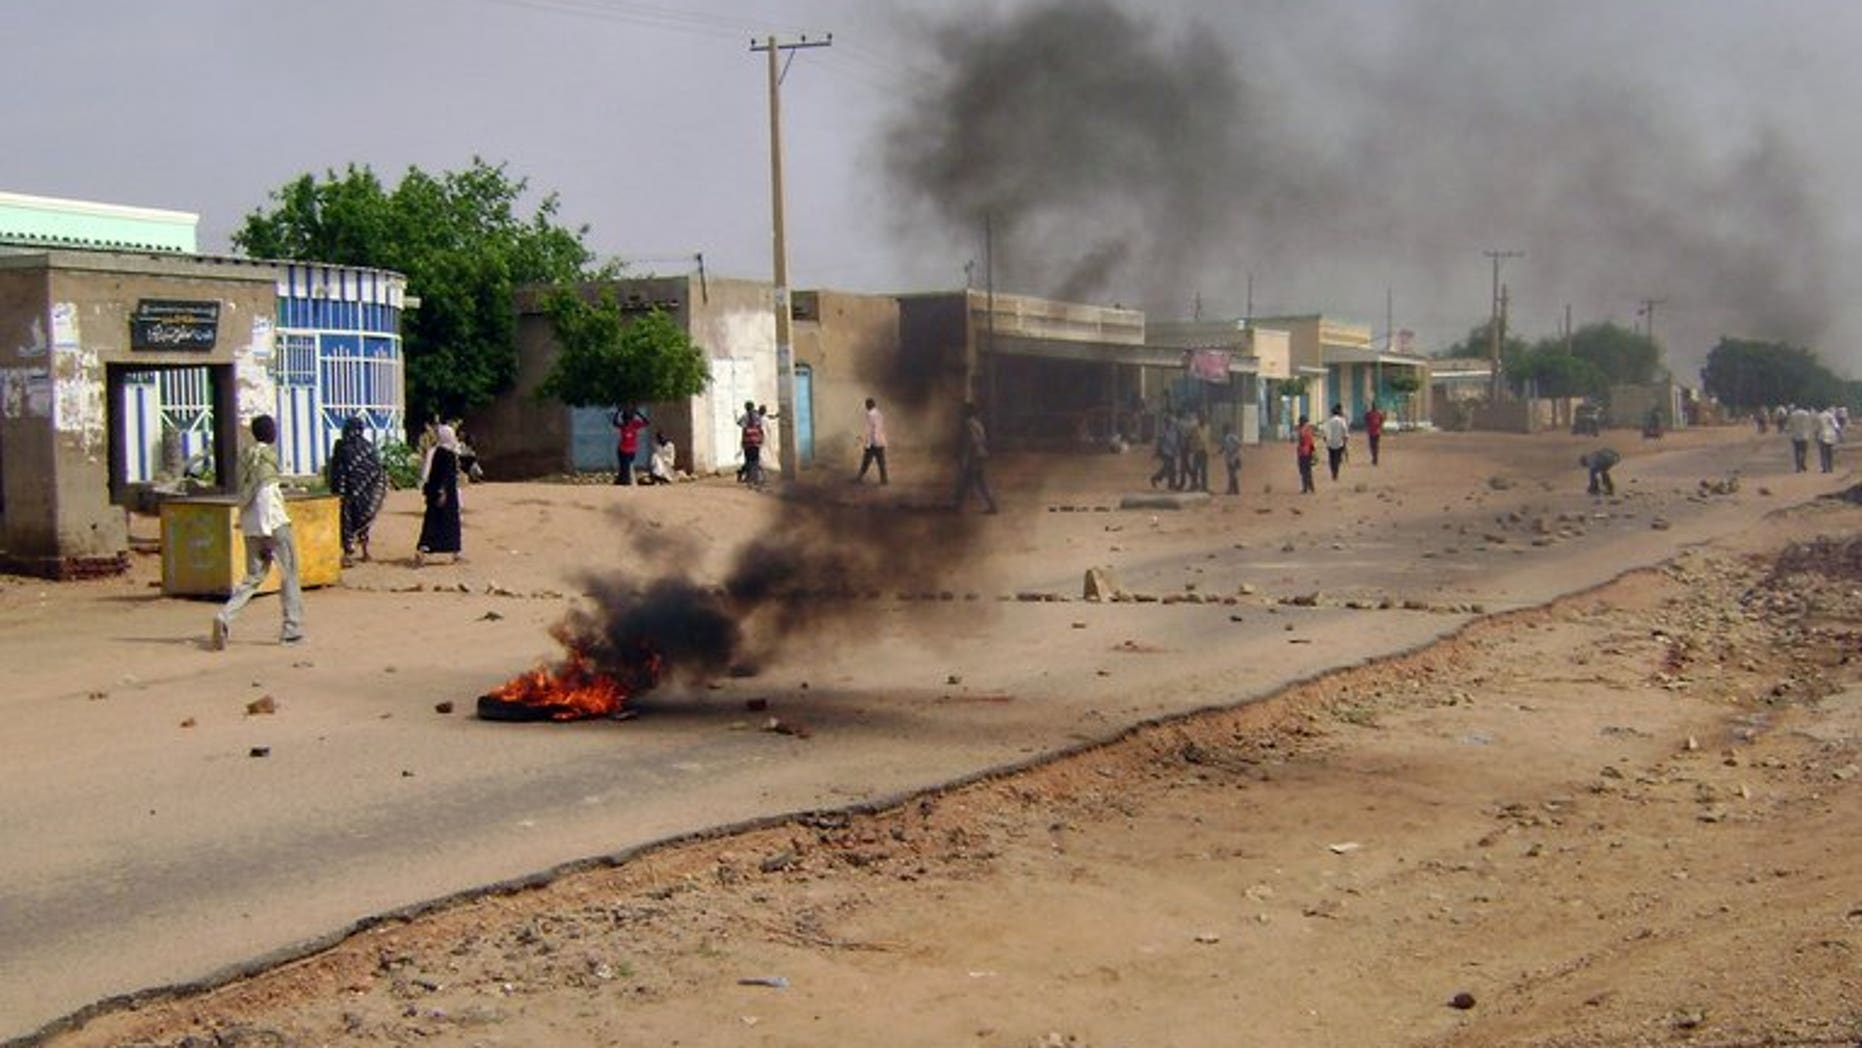 Smoke billows from burning tyres as Sudanese demonstrators protest in Nyala on July 31, 2012. Thousands of angry demonstrators in the South Darfur state capital Nyala clashed with police as they protested the murder of a businessman a day earlier